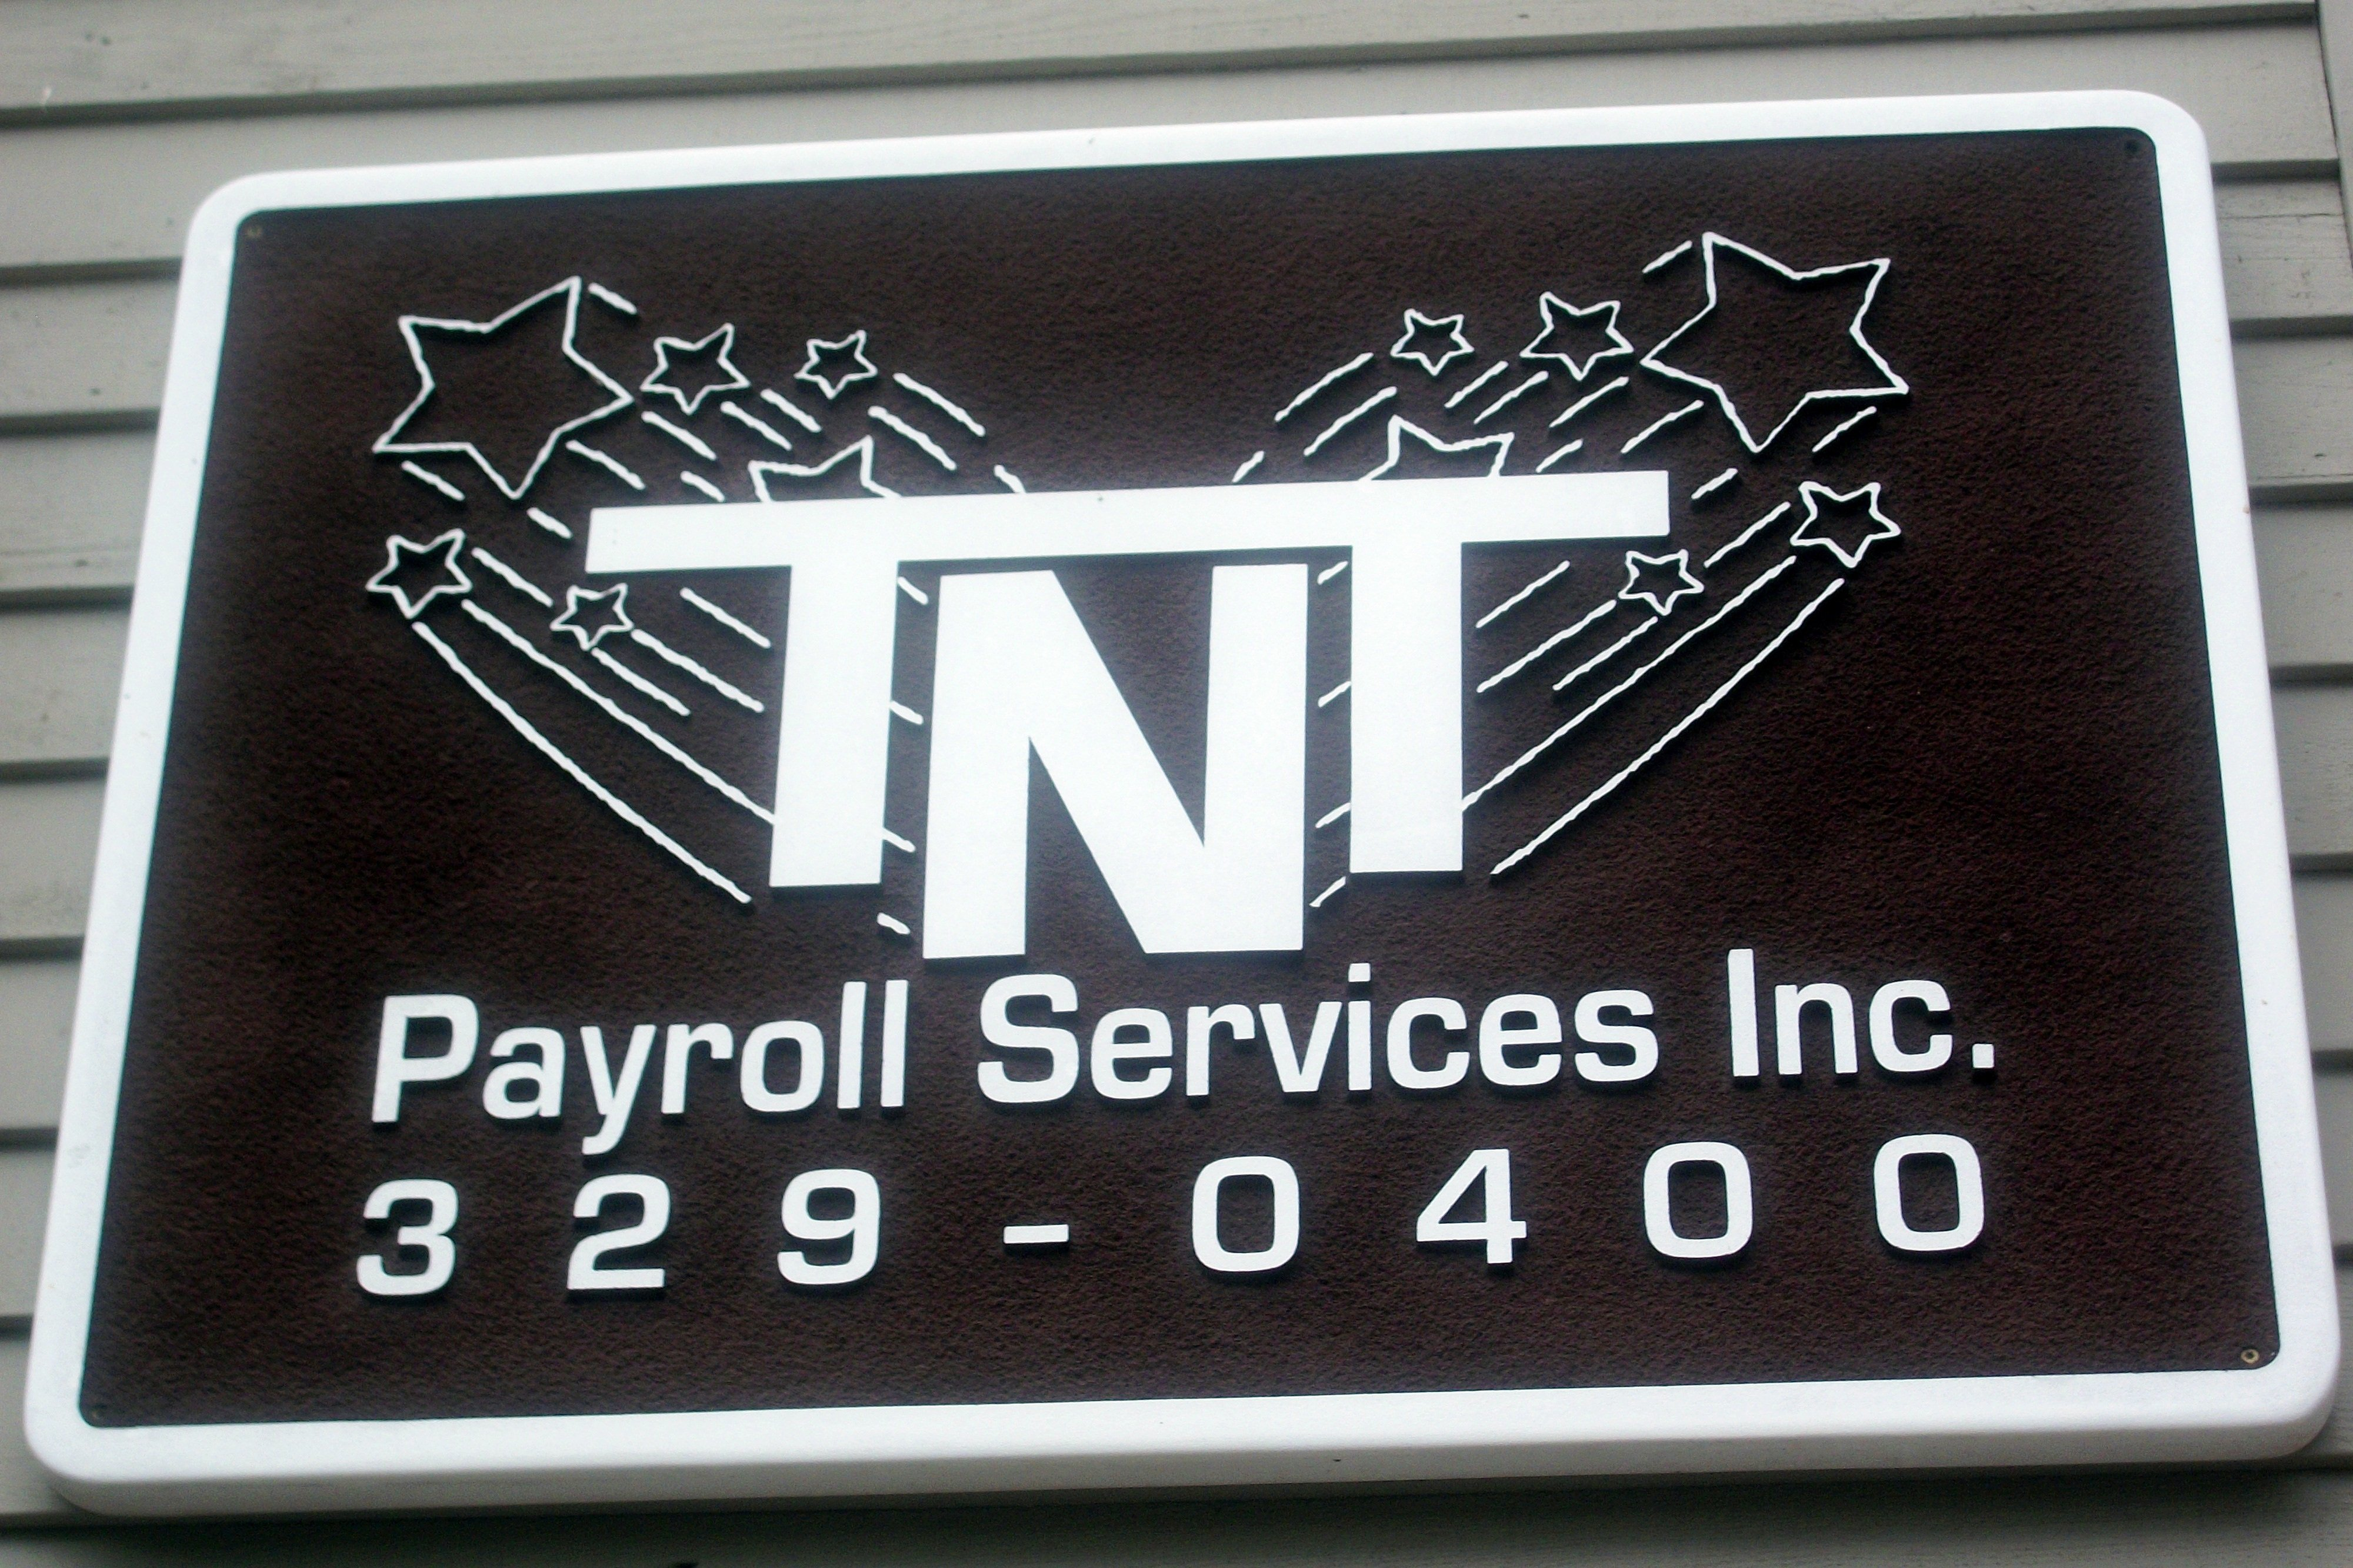 TNT Payroll Services sign